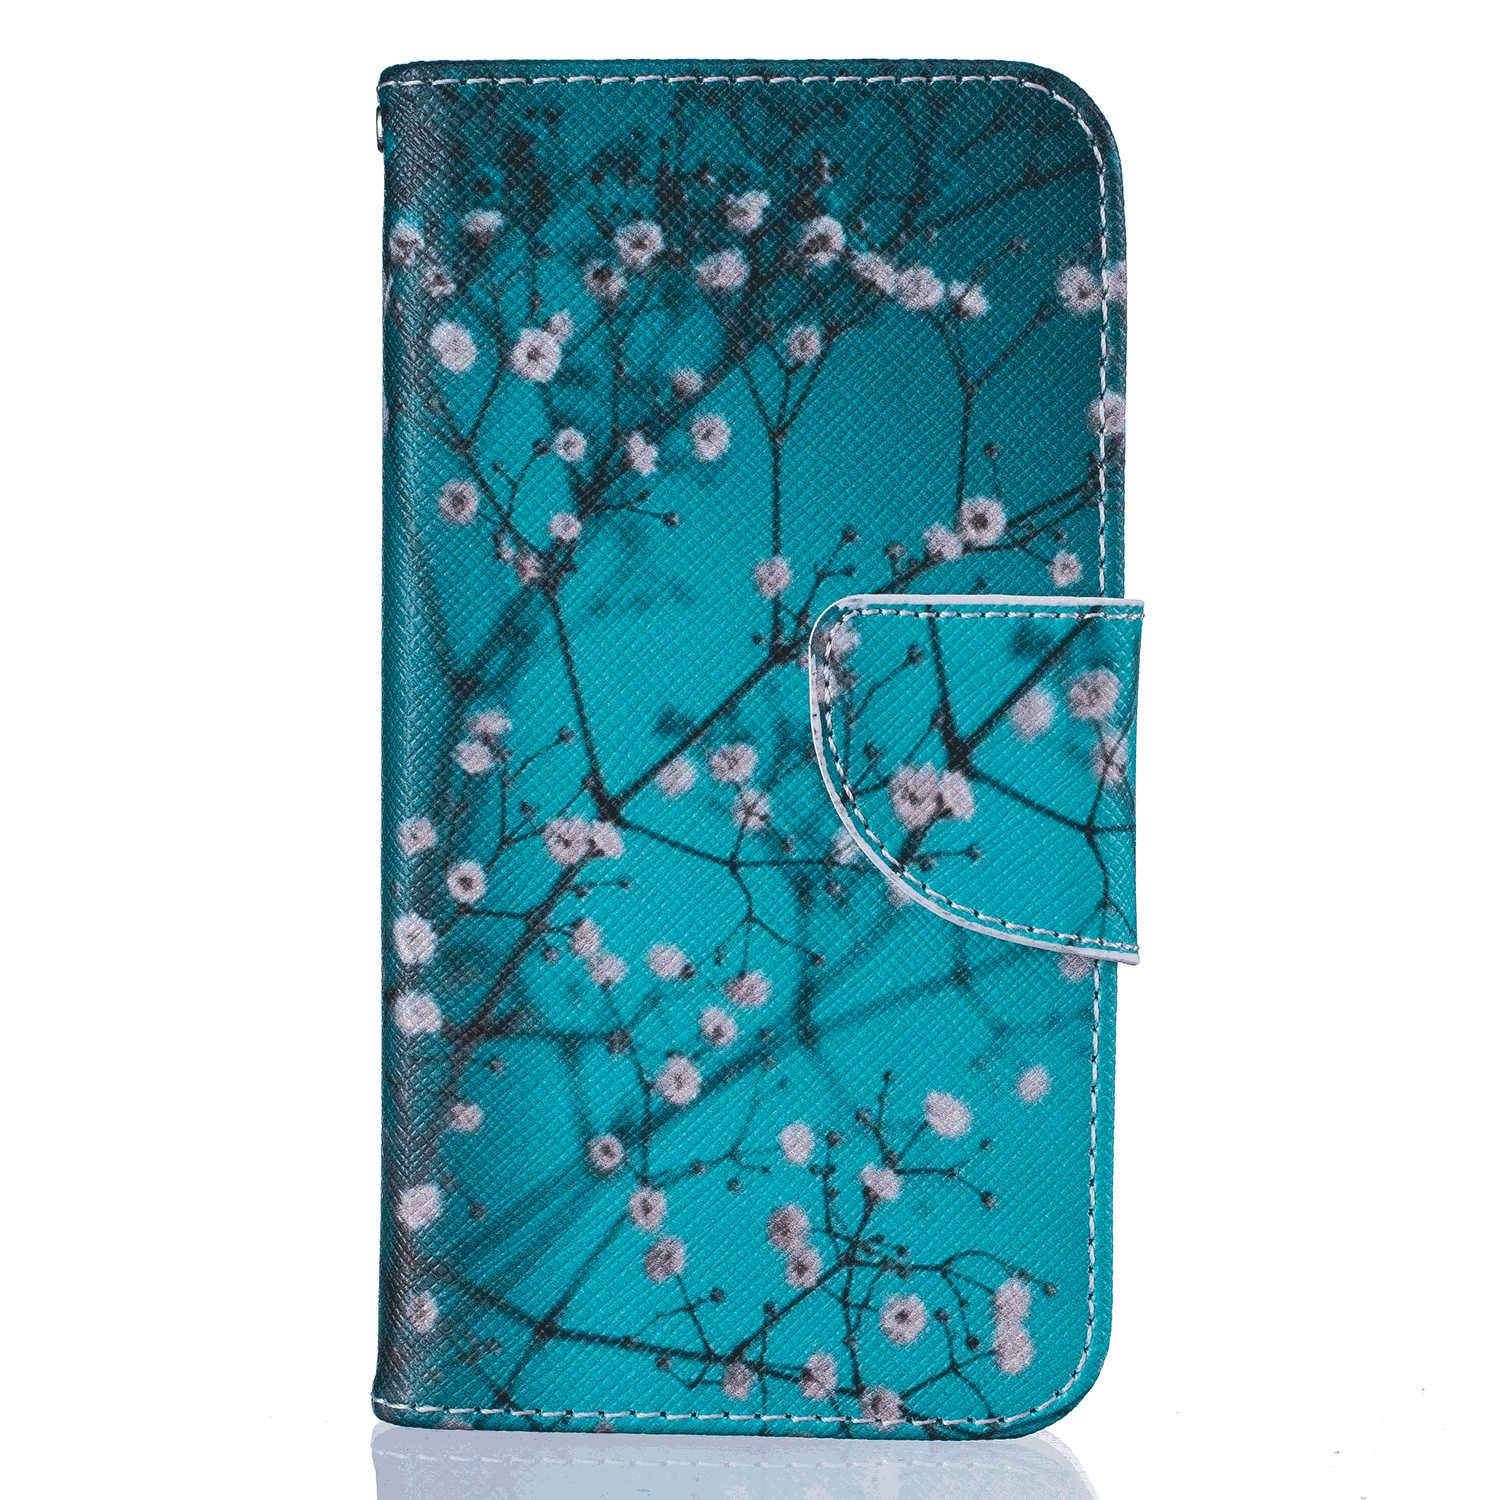 Stylish Cover Compatible with iPhone XR, tree2 Leather Flip Case Wallet for iPhone XR